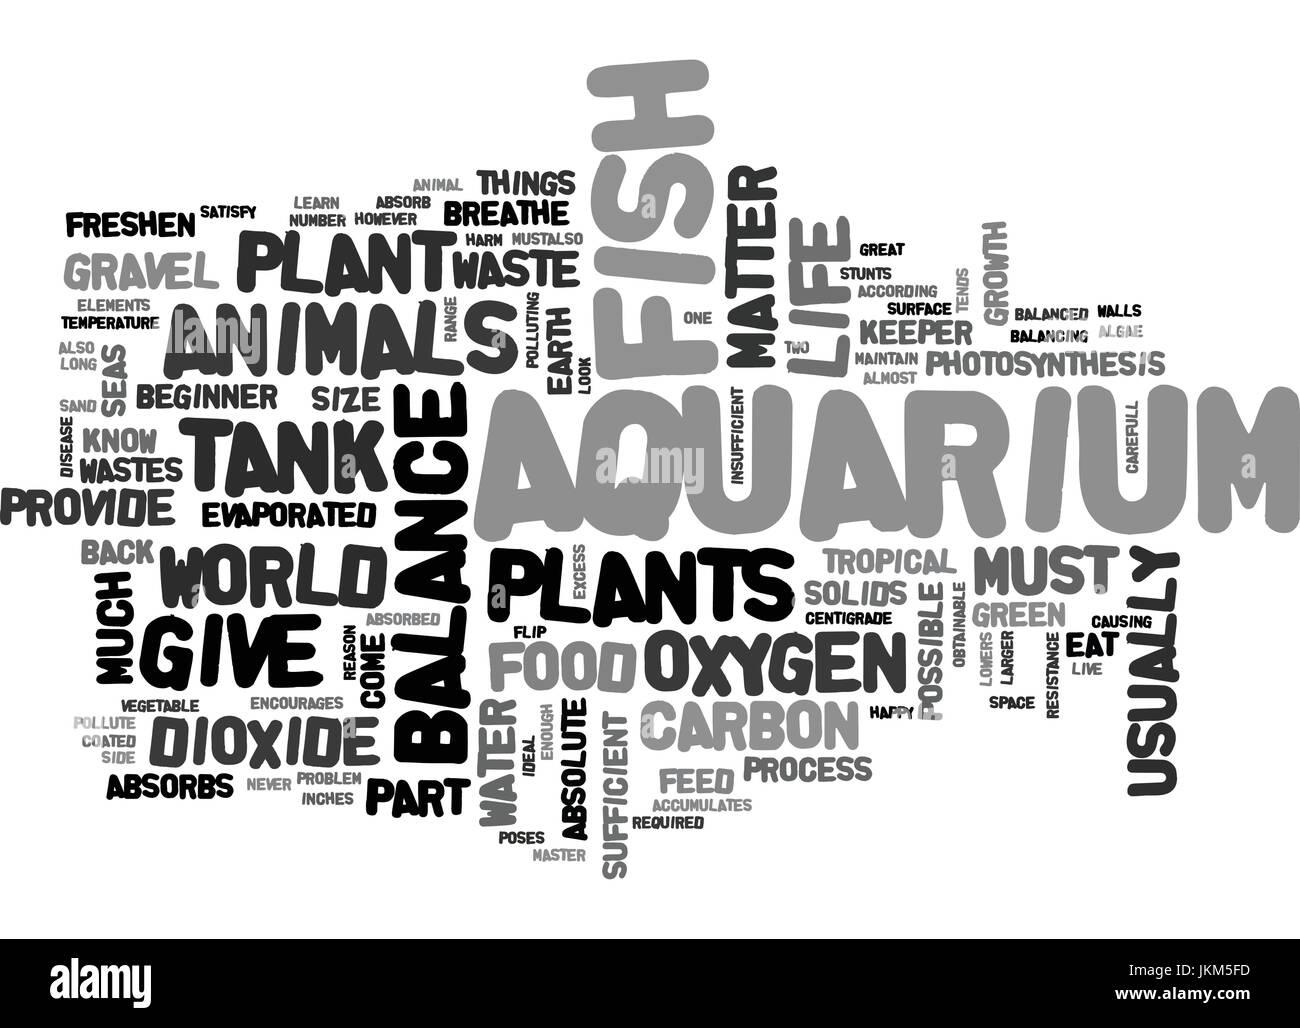 IS YOUR AQUARIUM BALANCED Text Background Word Cloud Concept - Stock Vector